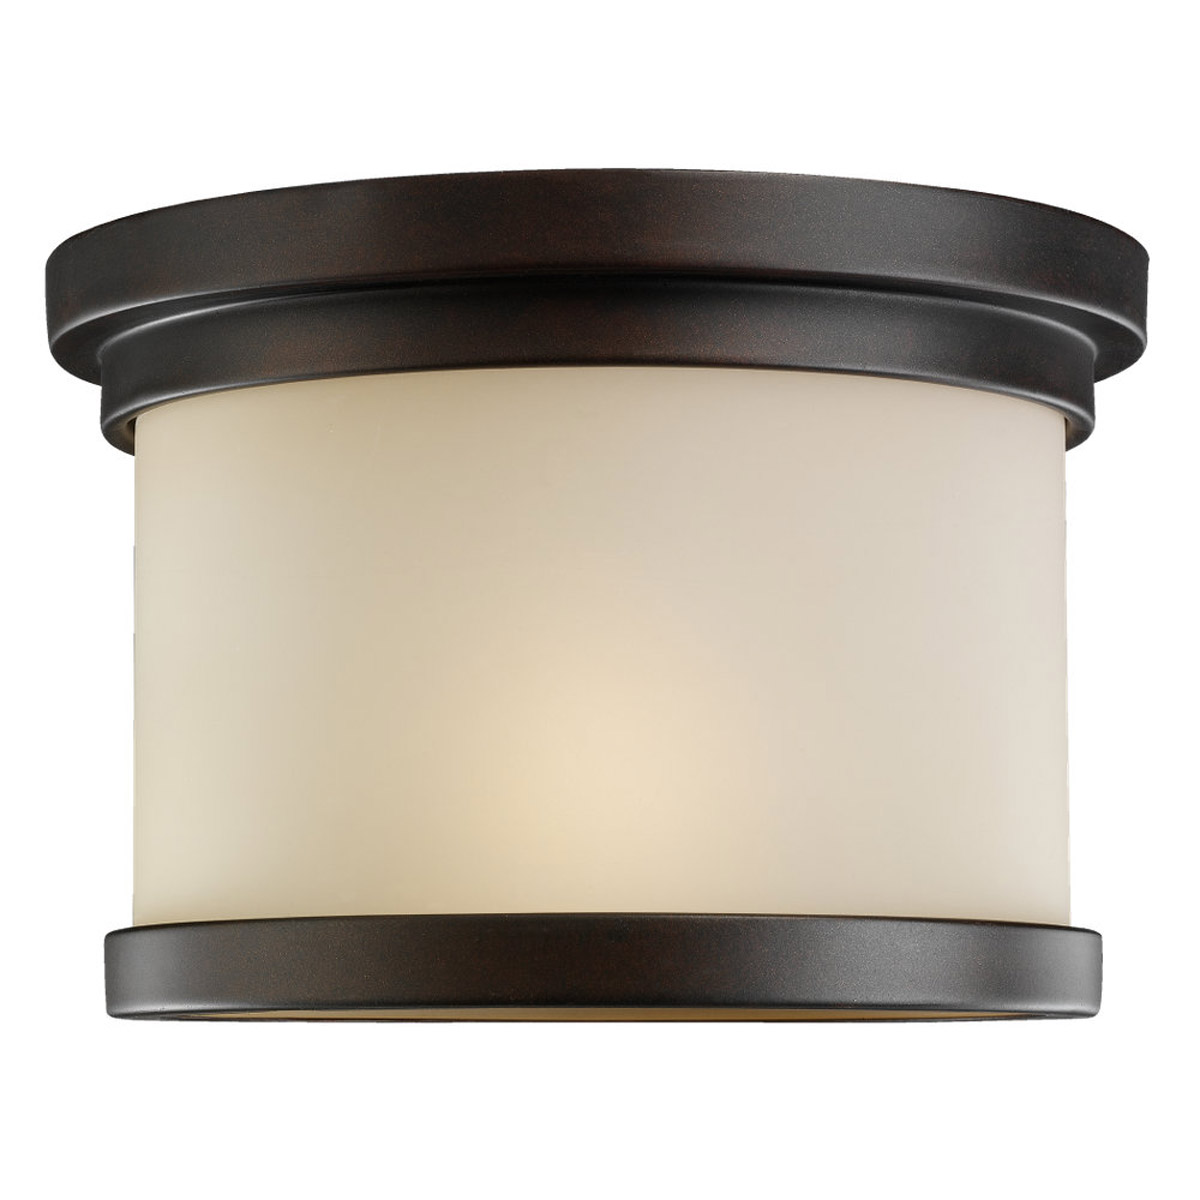 Sea Gull Lighting Winnetka 1 Light Outdoor Ceiling Fixture in Misted Bronze 78660-814 photo